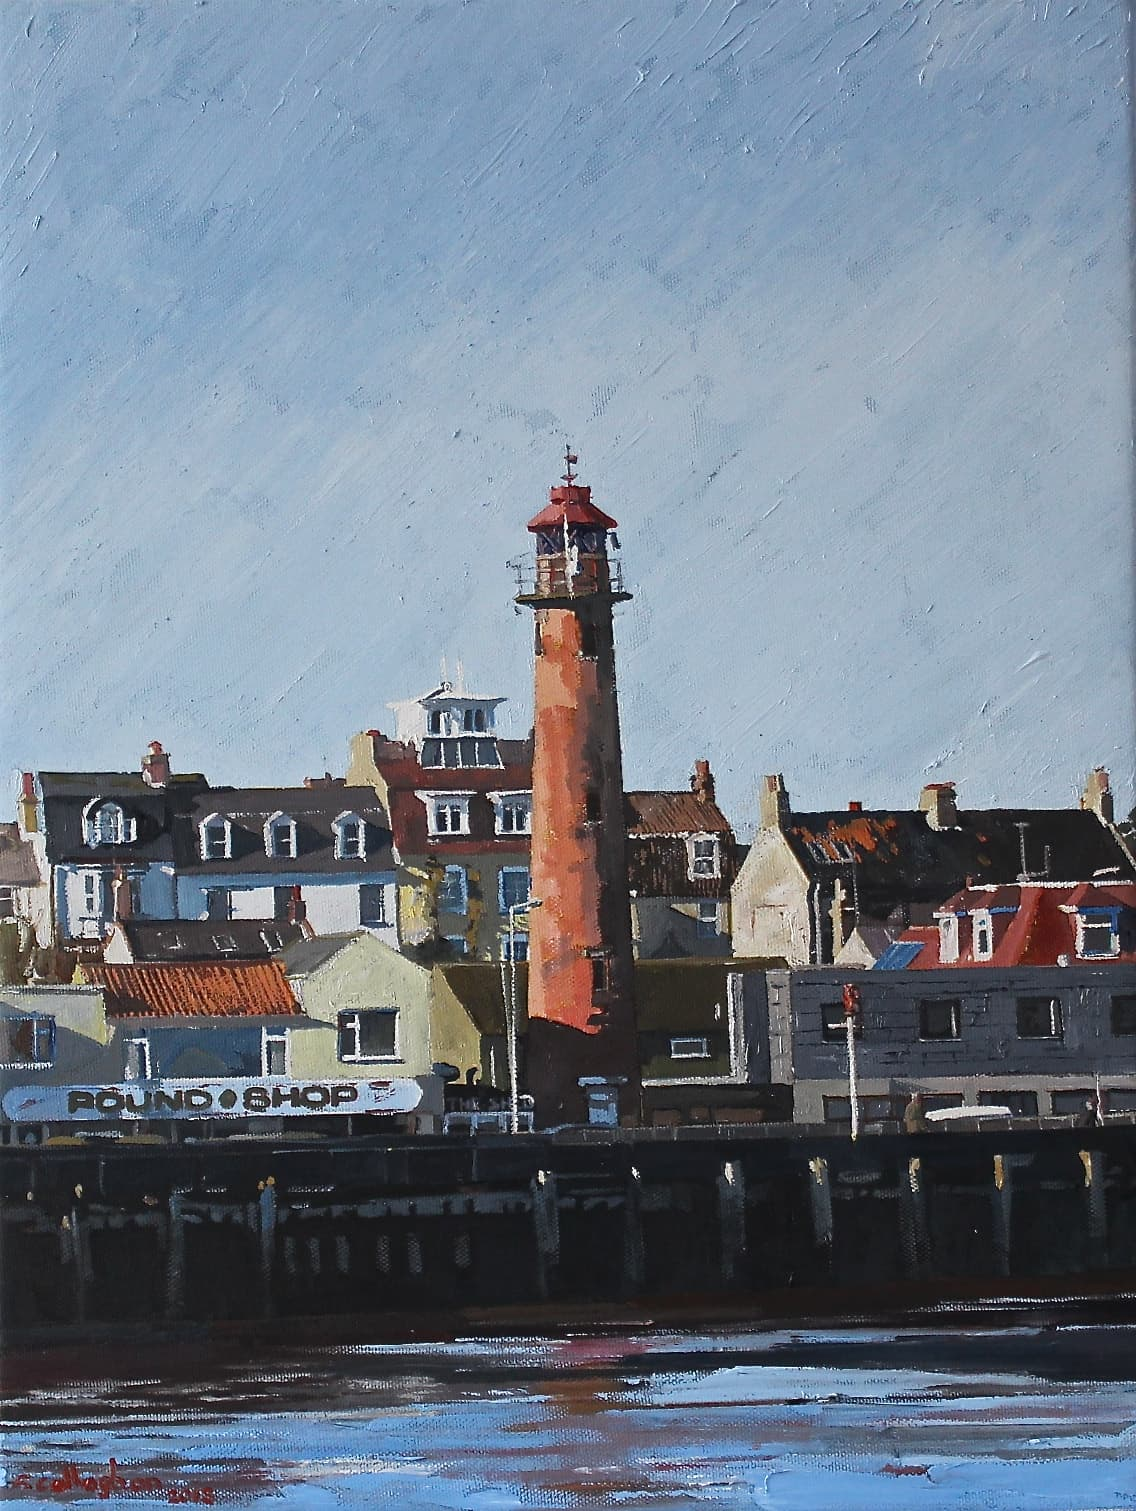 The Old Lighthouse Gorleston Painted by Frank Callaghan